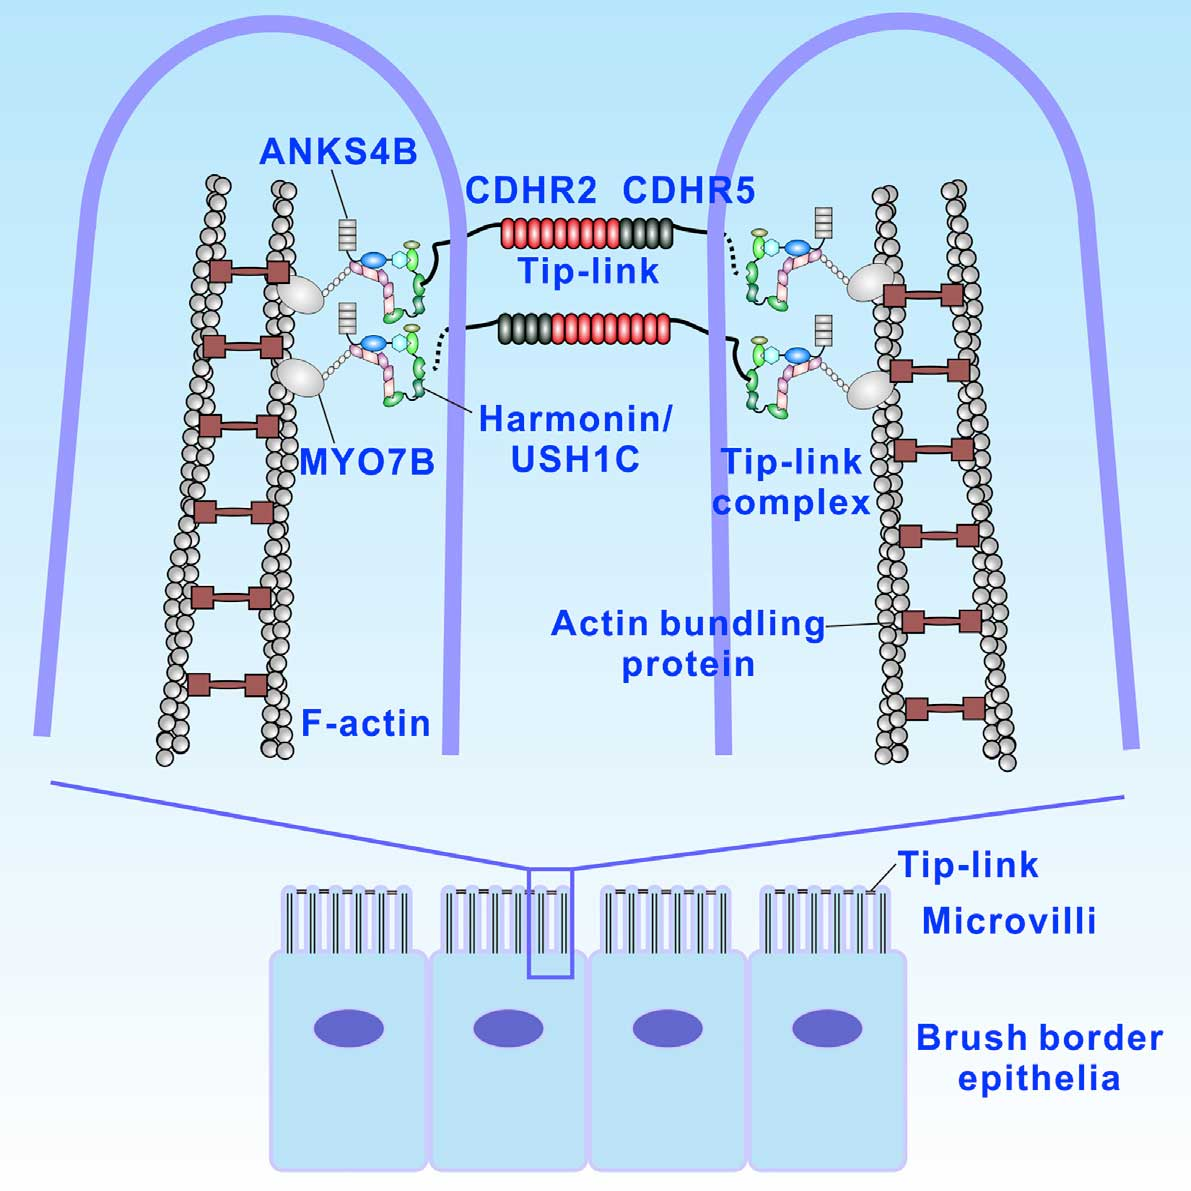 Ear sensory cell stereocilia evolve from gut microvilli did ear sensory cell stereocilia evolve from gut microvilli ccuart Gallery